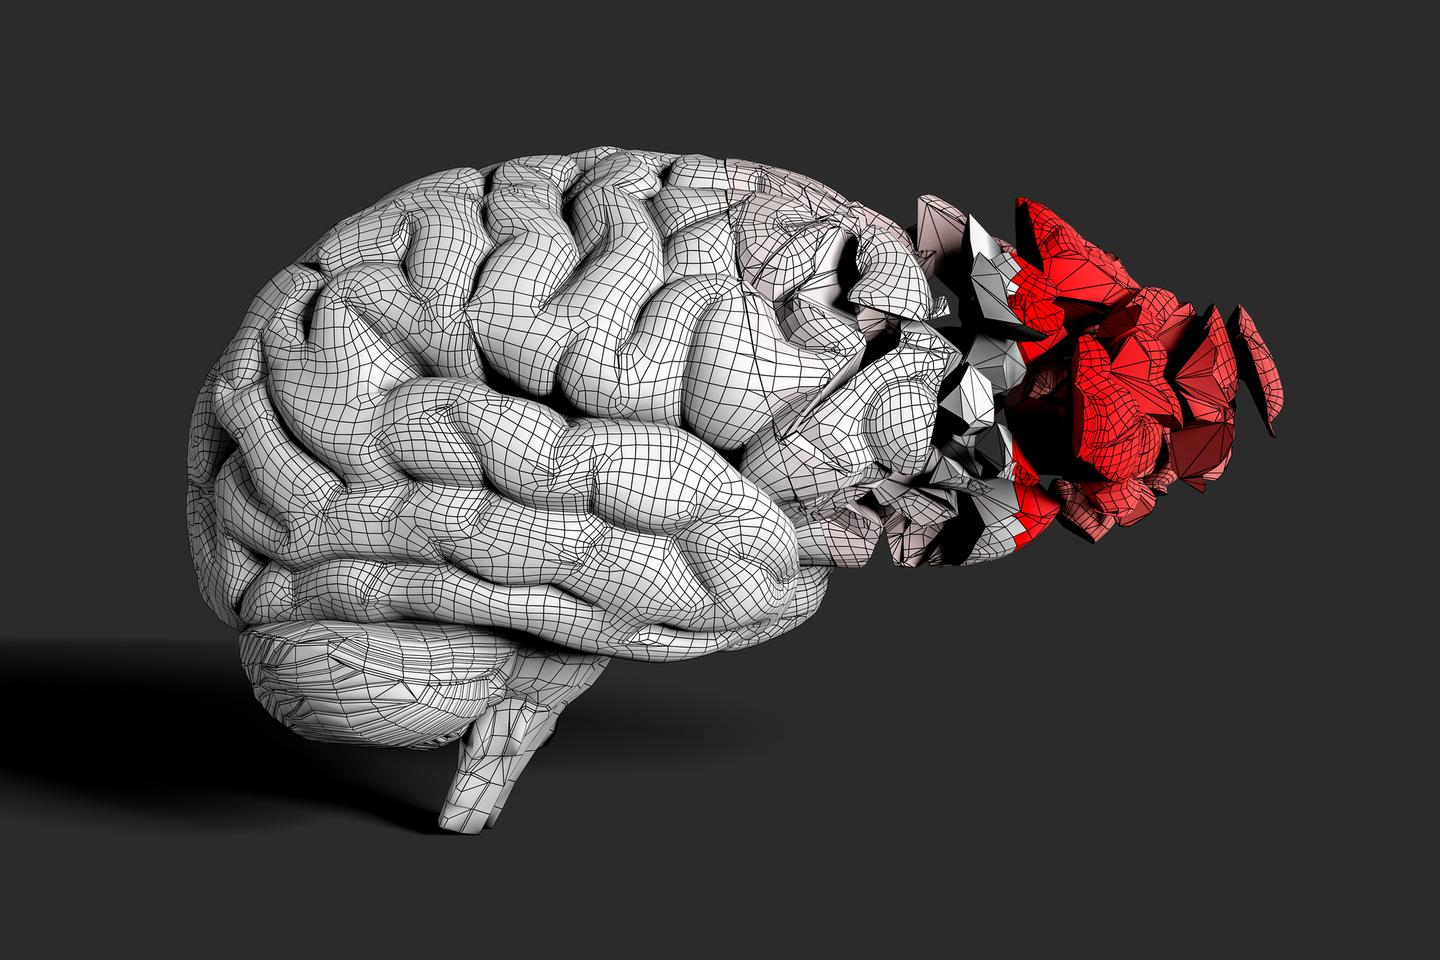 A new drug called SAK3 has shown promising preclinical results in animal models of Alzheimer's and Lewy Body dementia